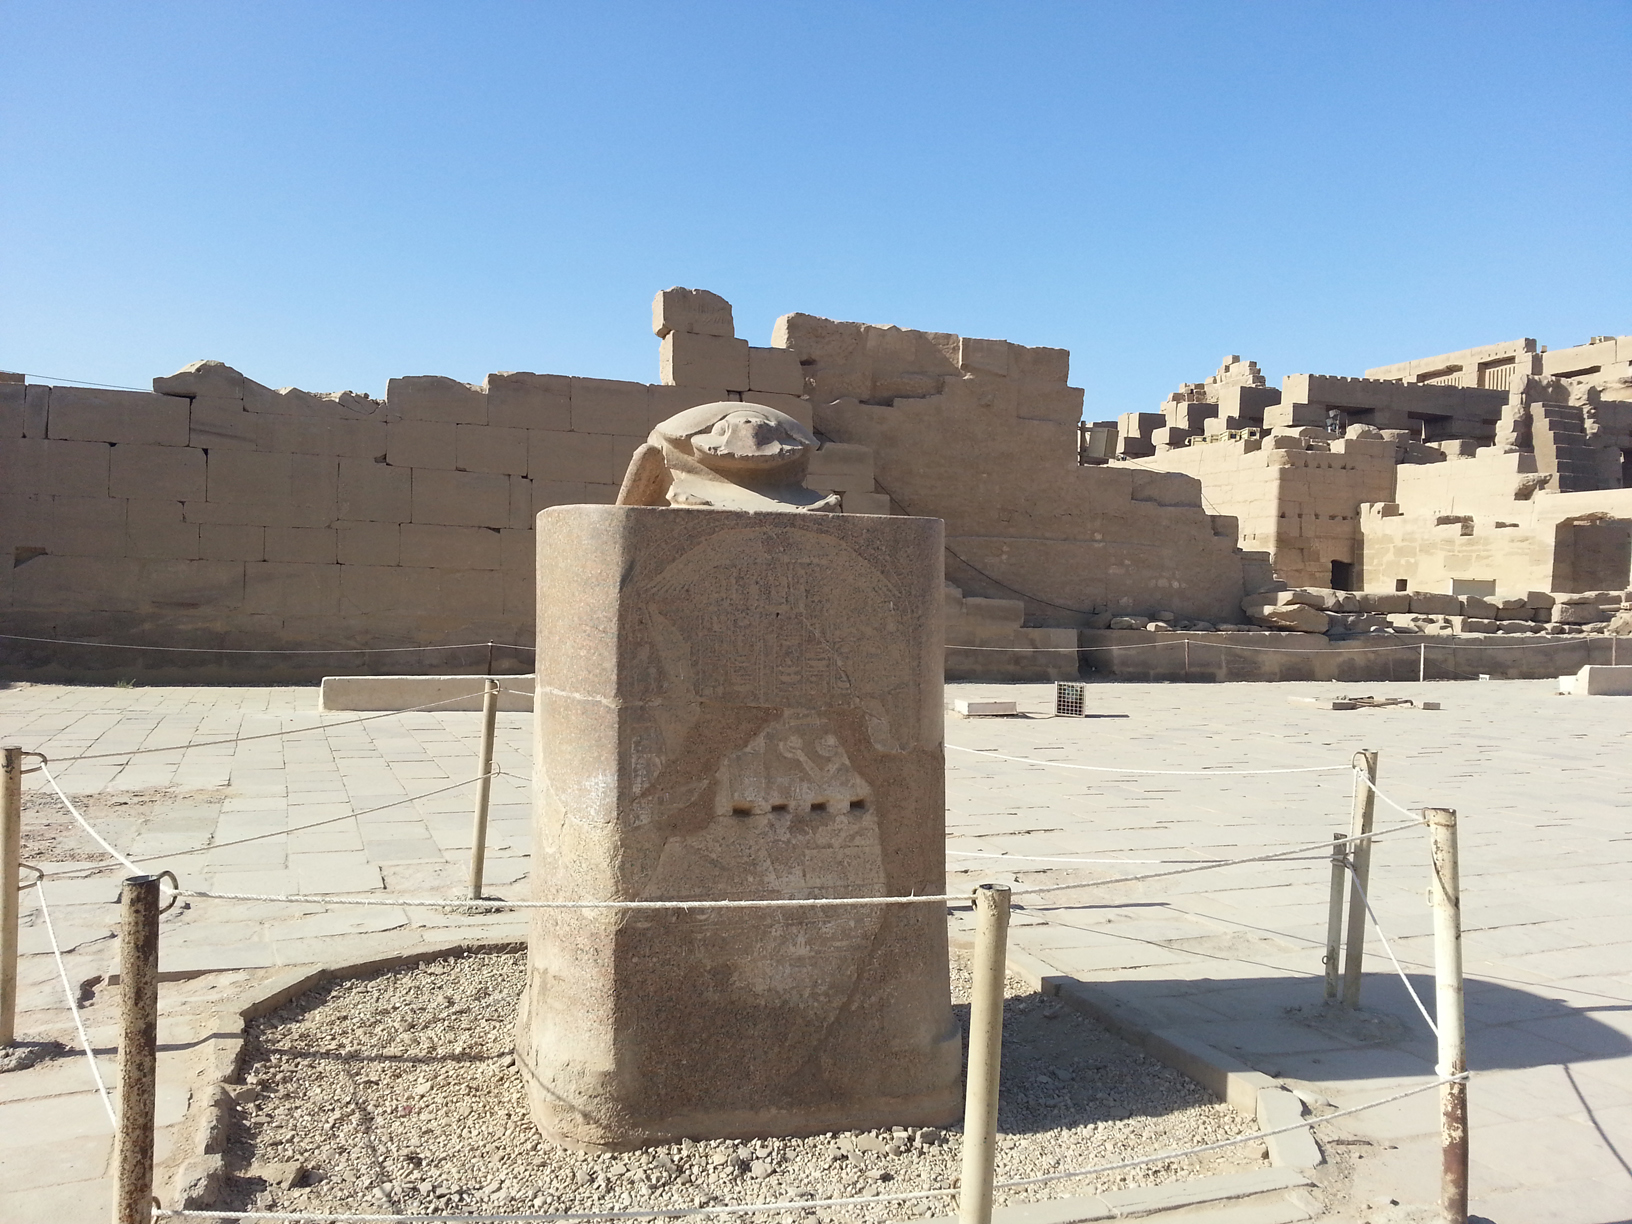 The statue of a giant scarab at Karnak temple